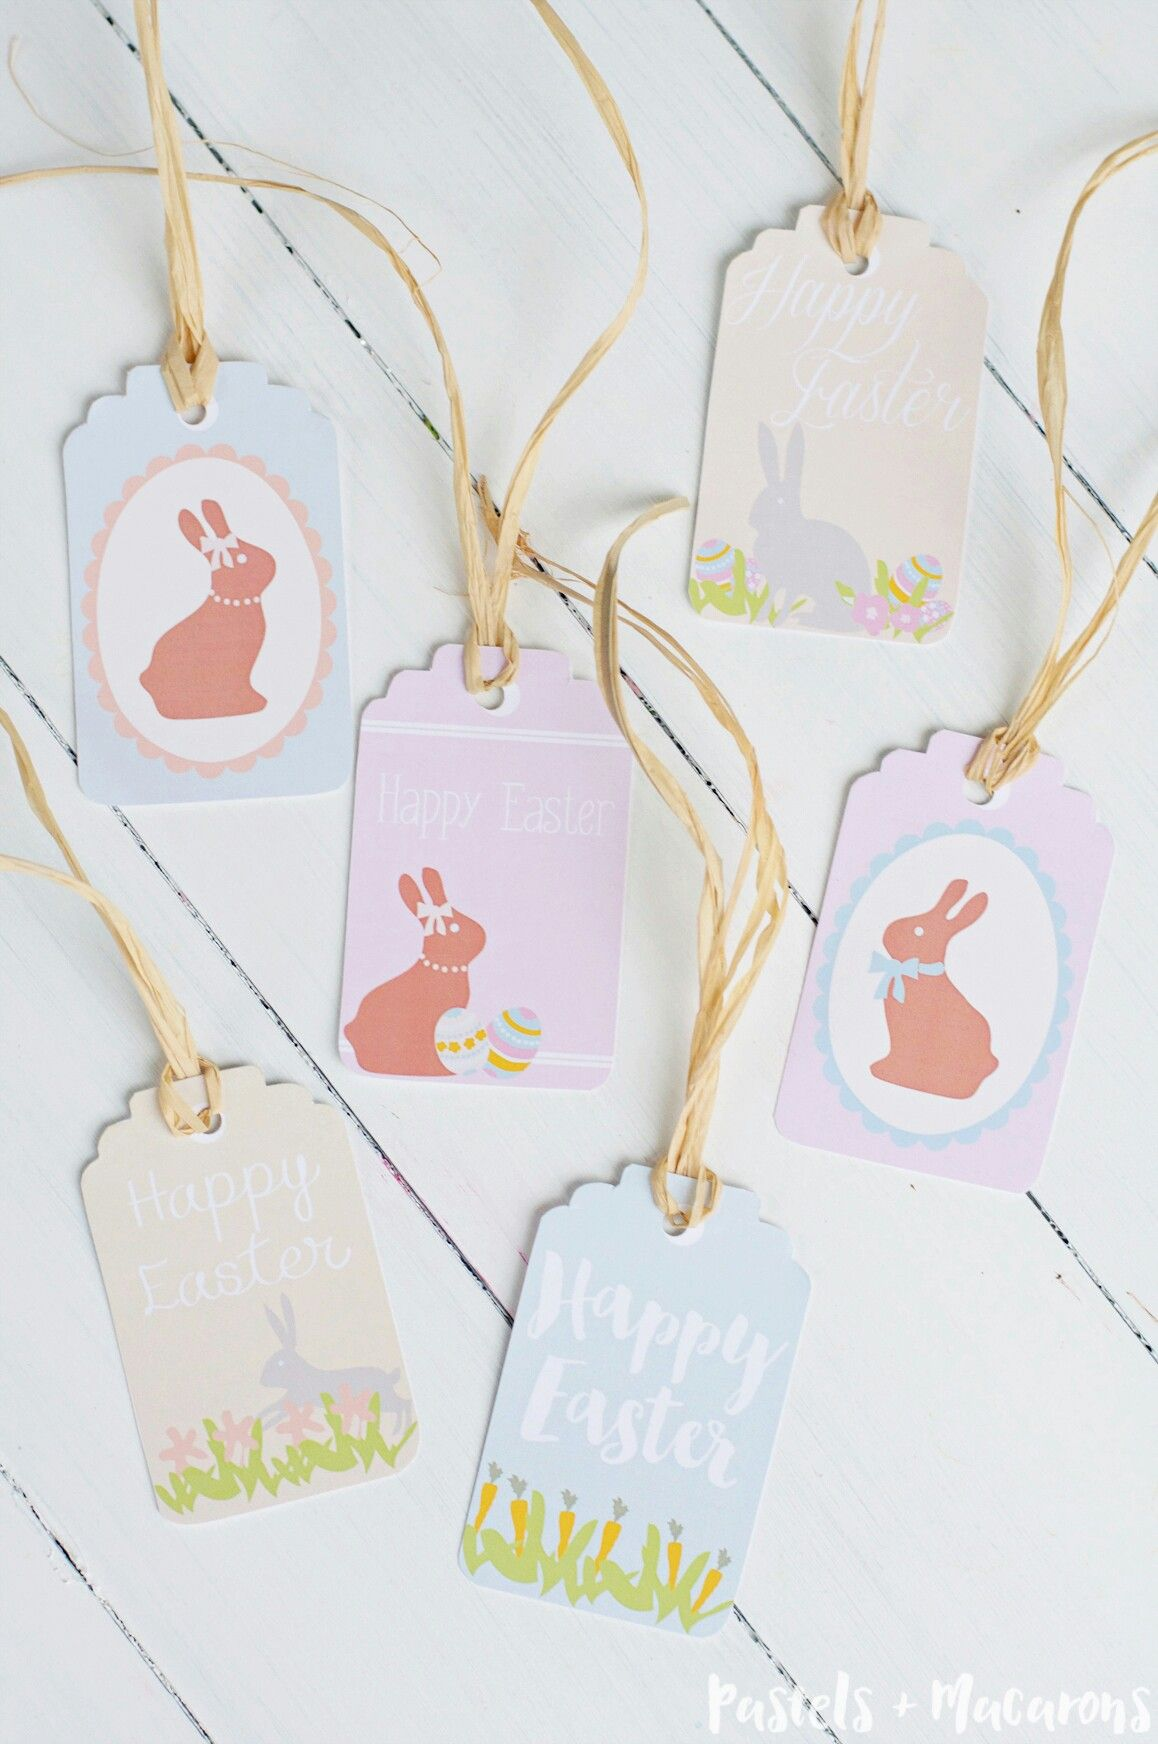 Pin by nancy mcparlane on easter decorations and gift tags pin by nancy mcparlane on easter decorations and gift tags pinterest easter negle Gallery